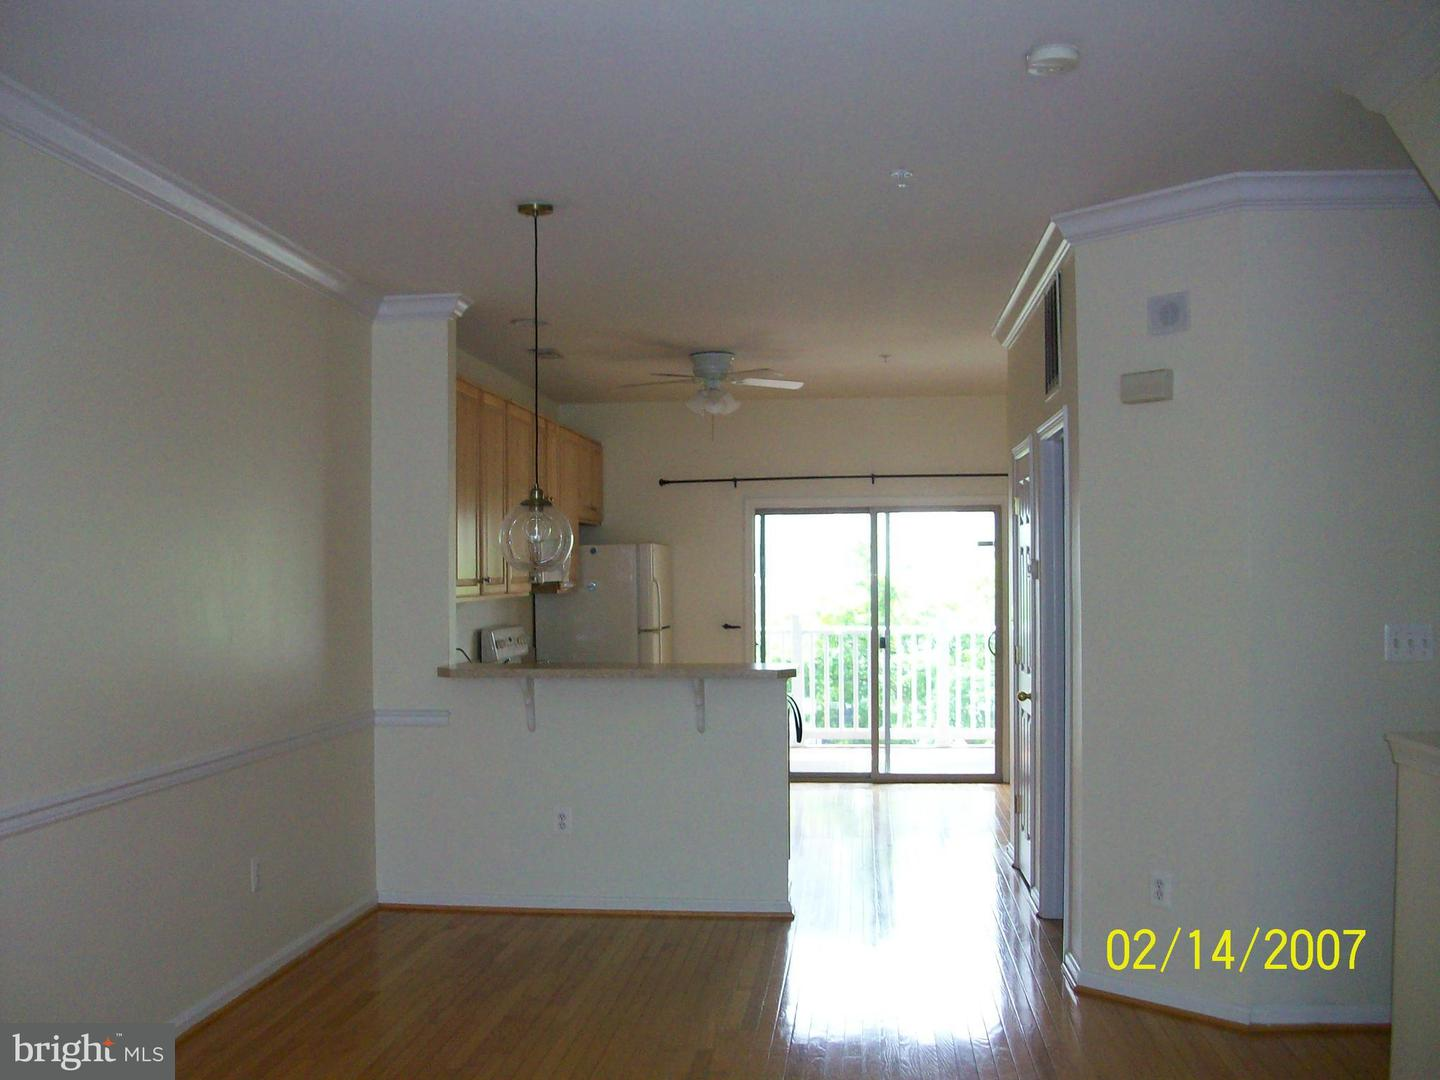 Other Residential for Rent at 25 Exeter St #165 Baltimore, Maryland 21202 United States